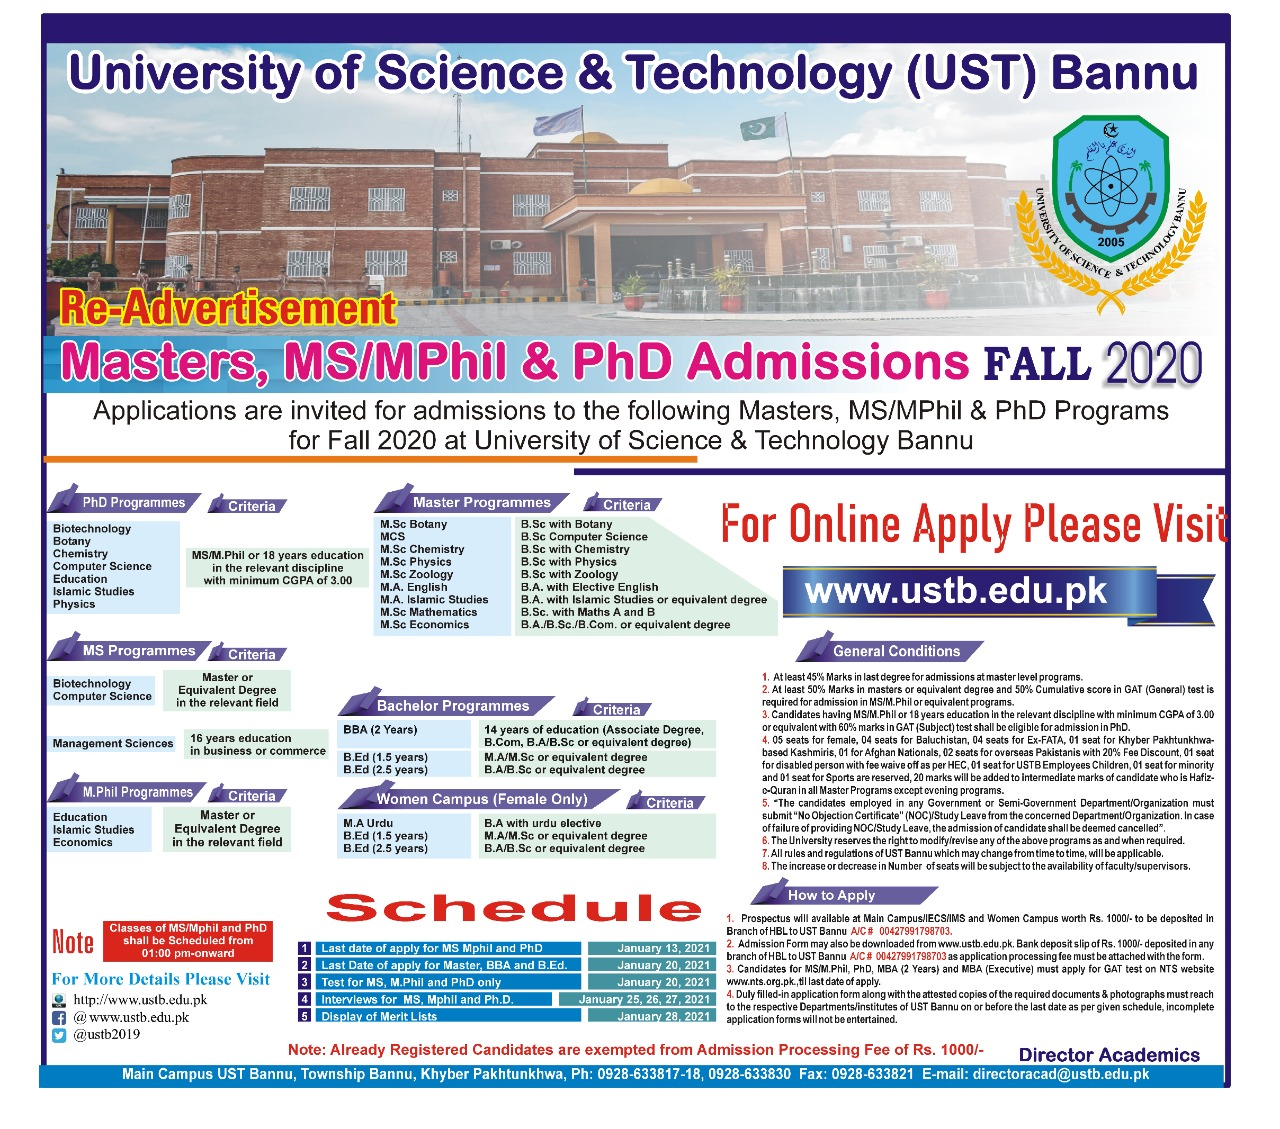 UST Bannu MS/M.Phil & PhD Admissions Fall 2020